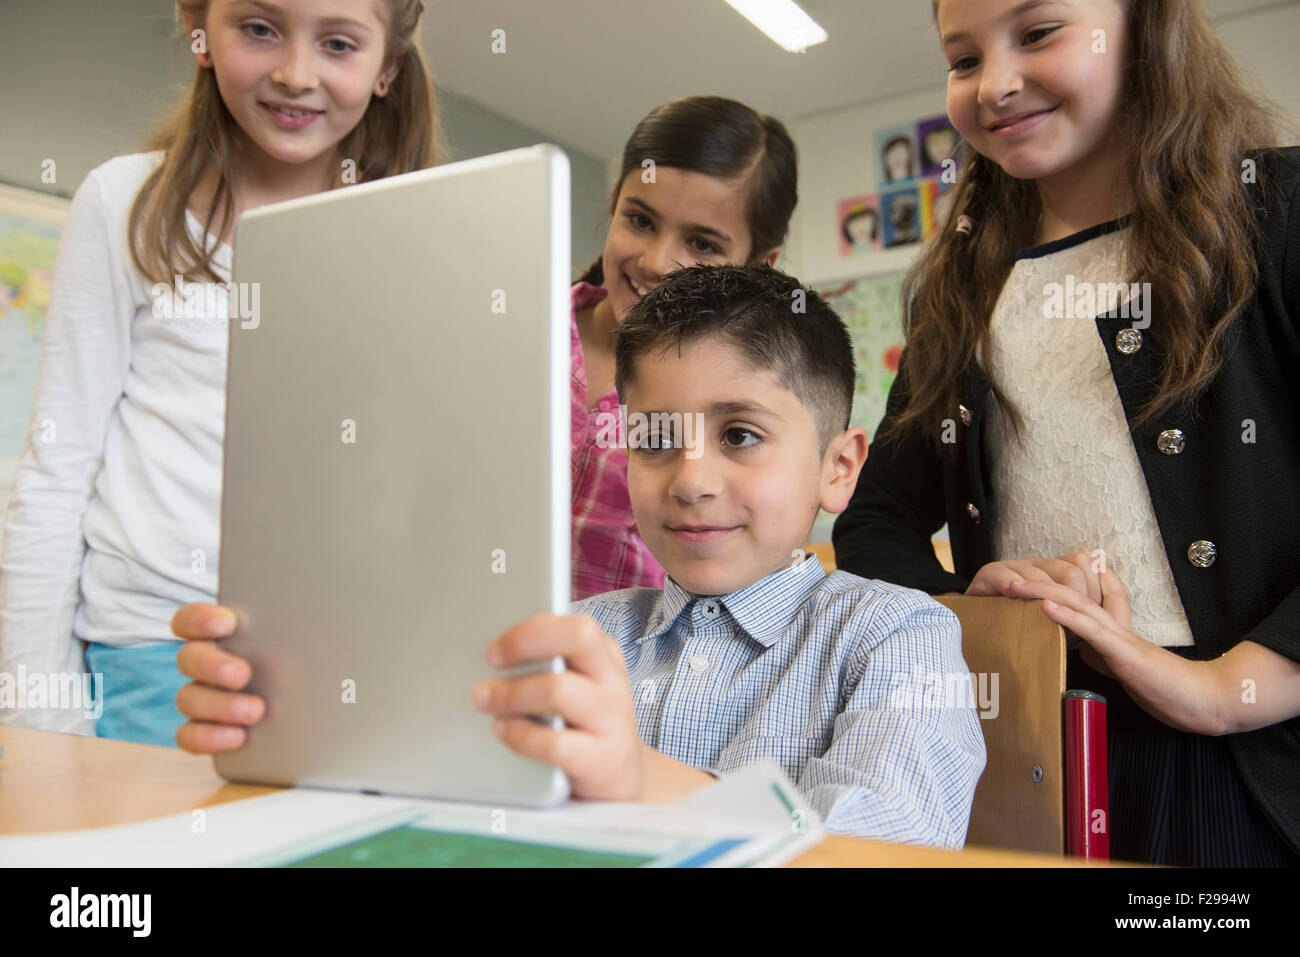 School children using a digital tablet in classroom, Munich, Bavaria, Germany - Stock Image